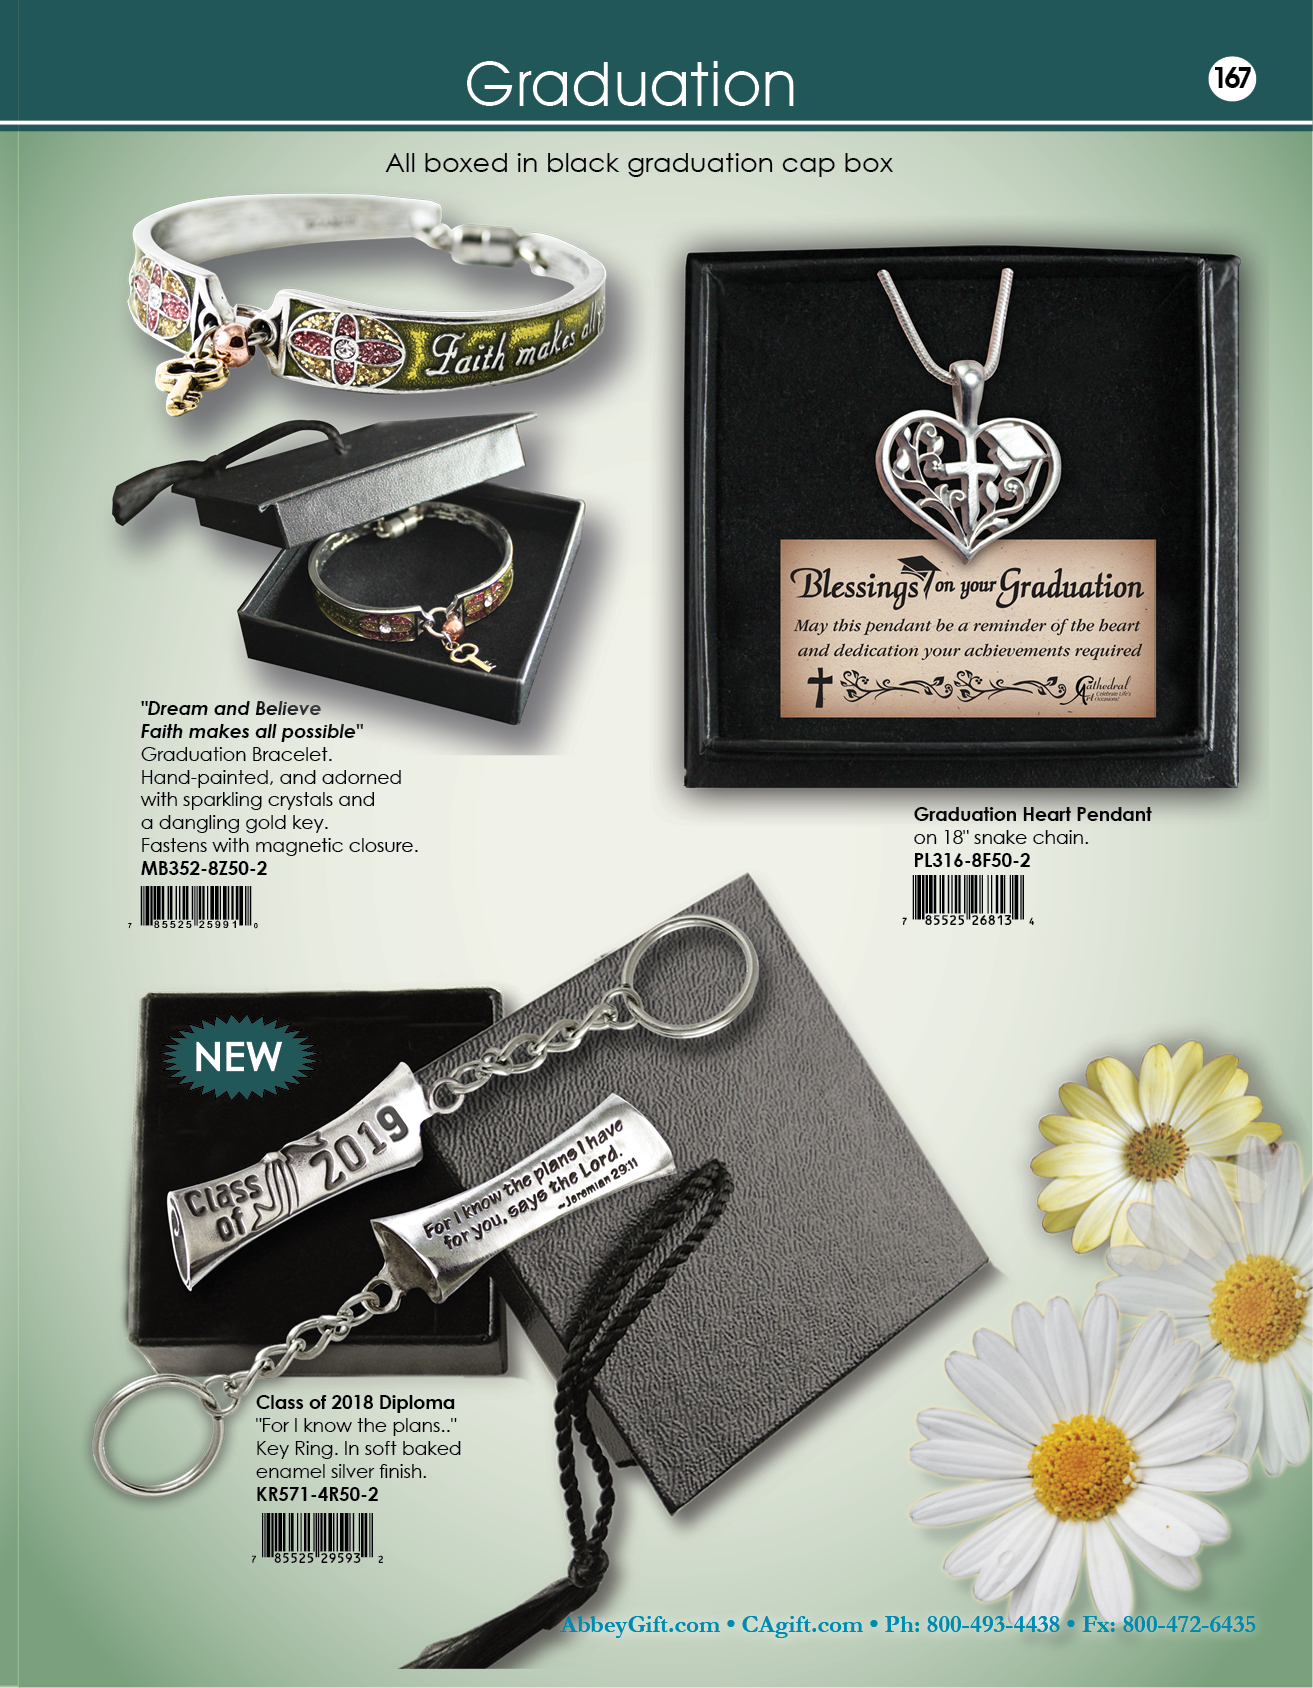 CA & Abbey Gift Pgs167